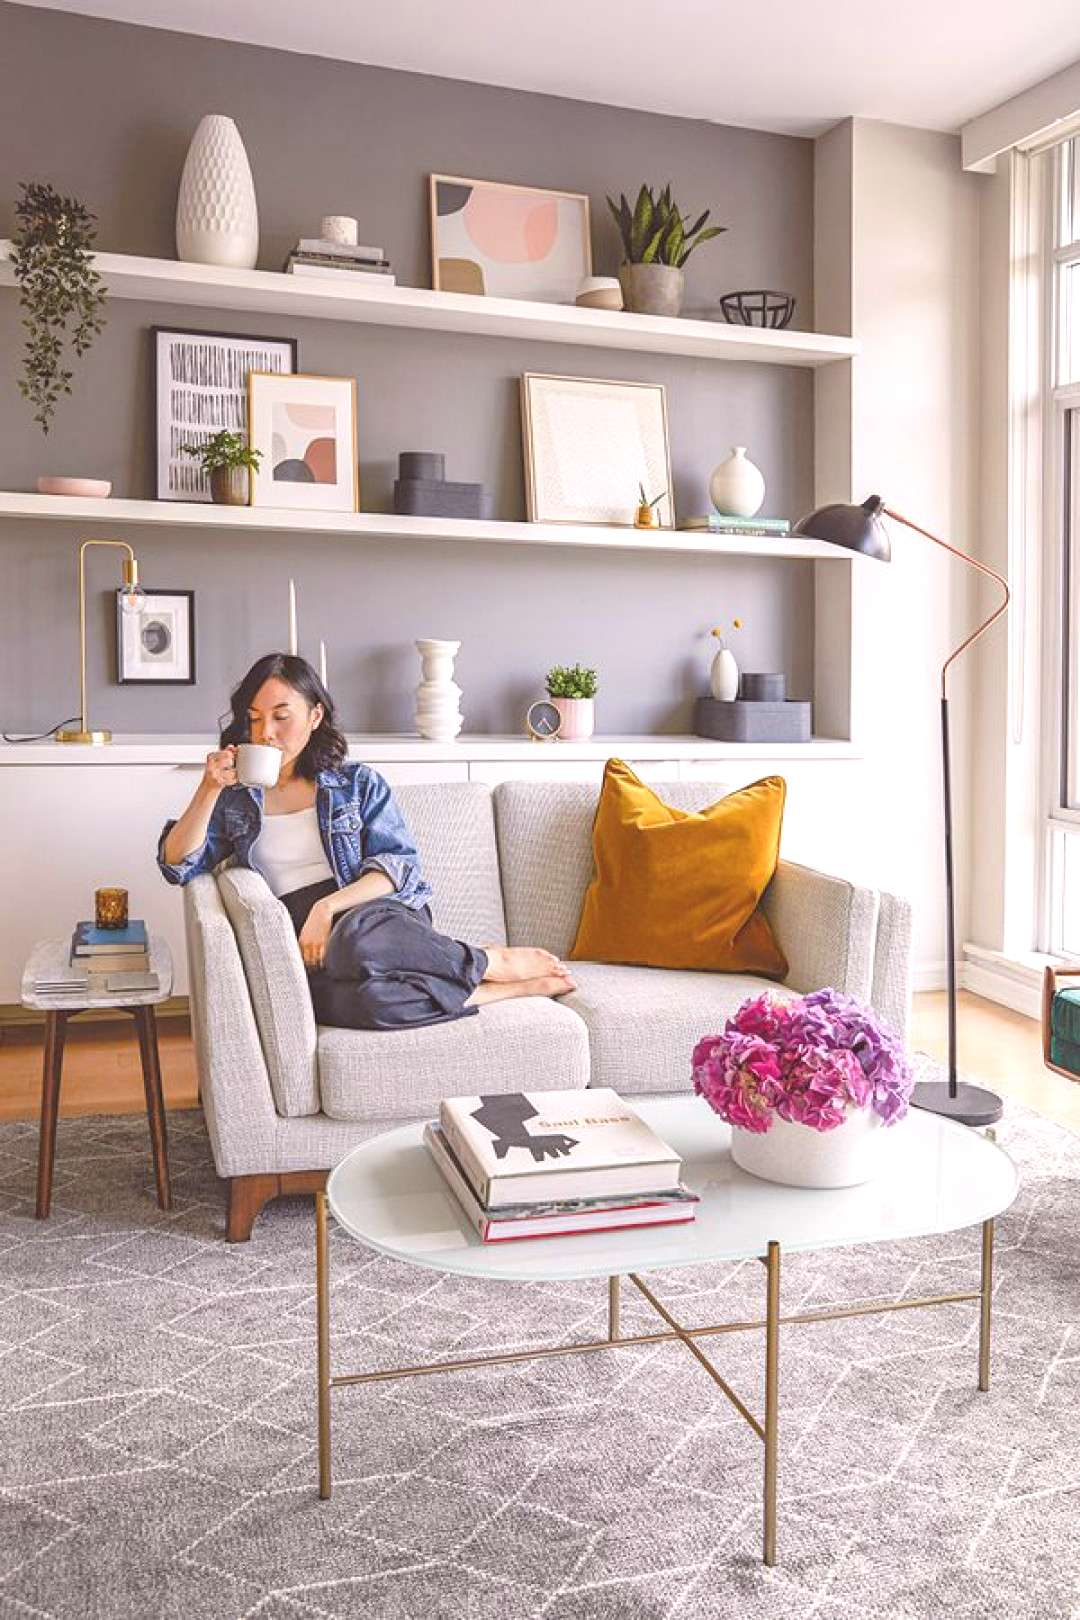 City living means being connected to culture, art, food, and friends... and often condo-sized space